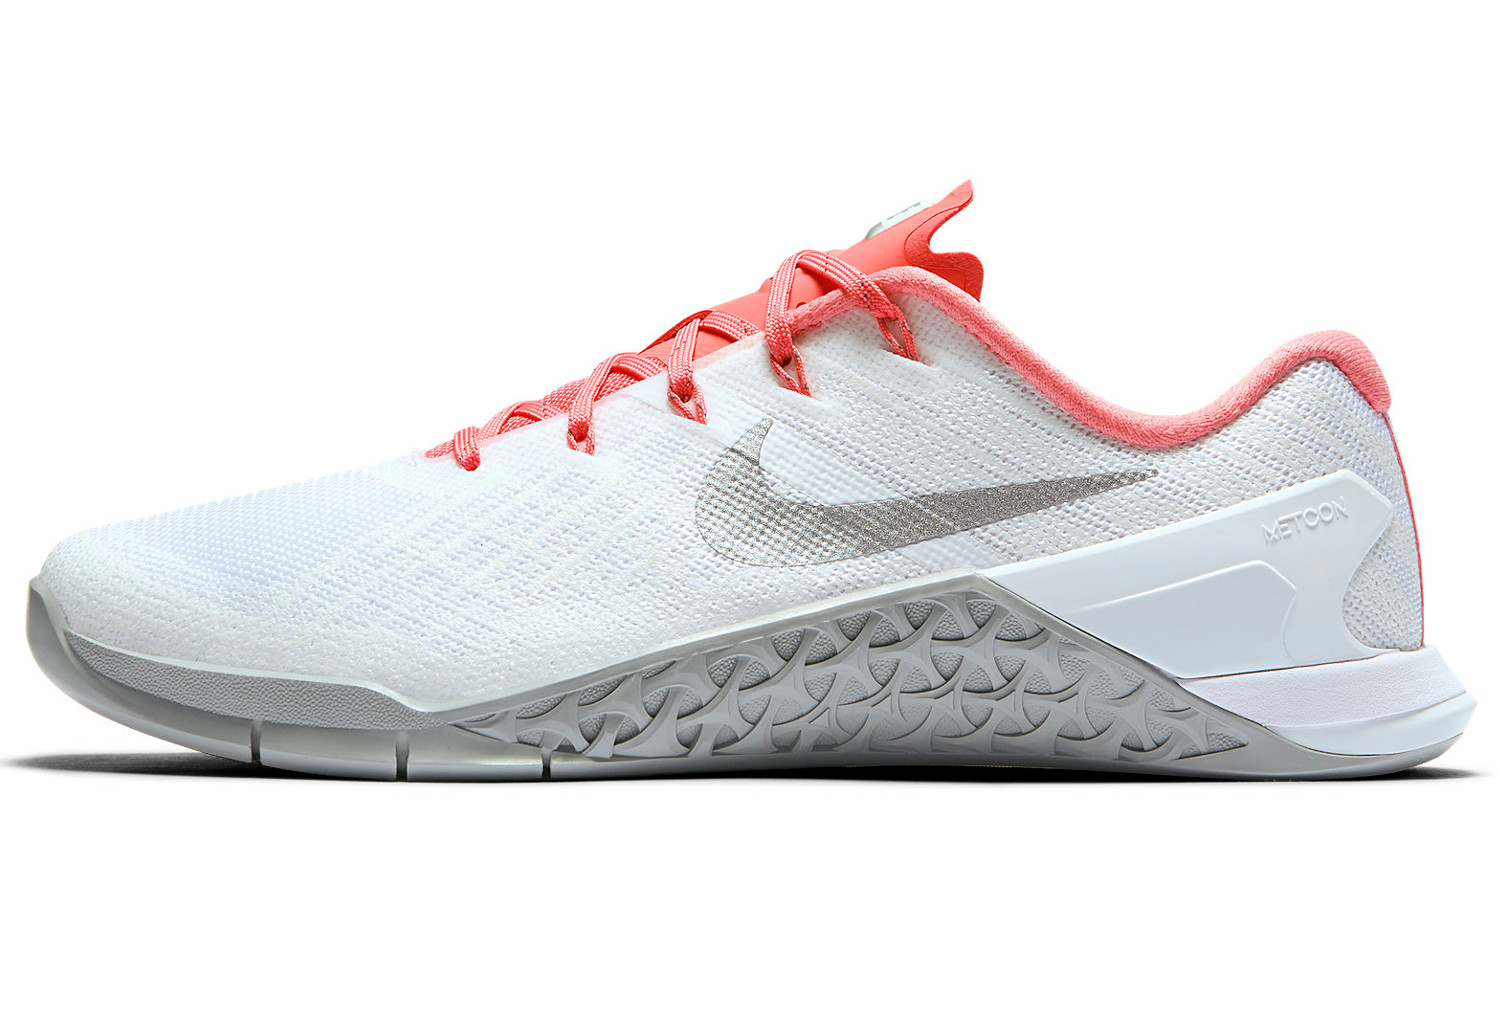 chaussures de cross training femme nike metcon 3 blanc rose. Black Bedroom Furniture Sets. Home Design Ideas